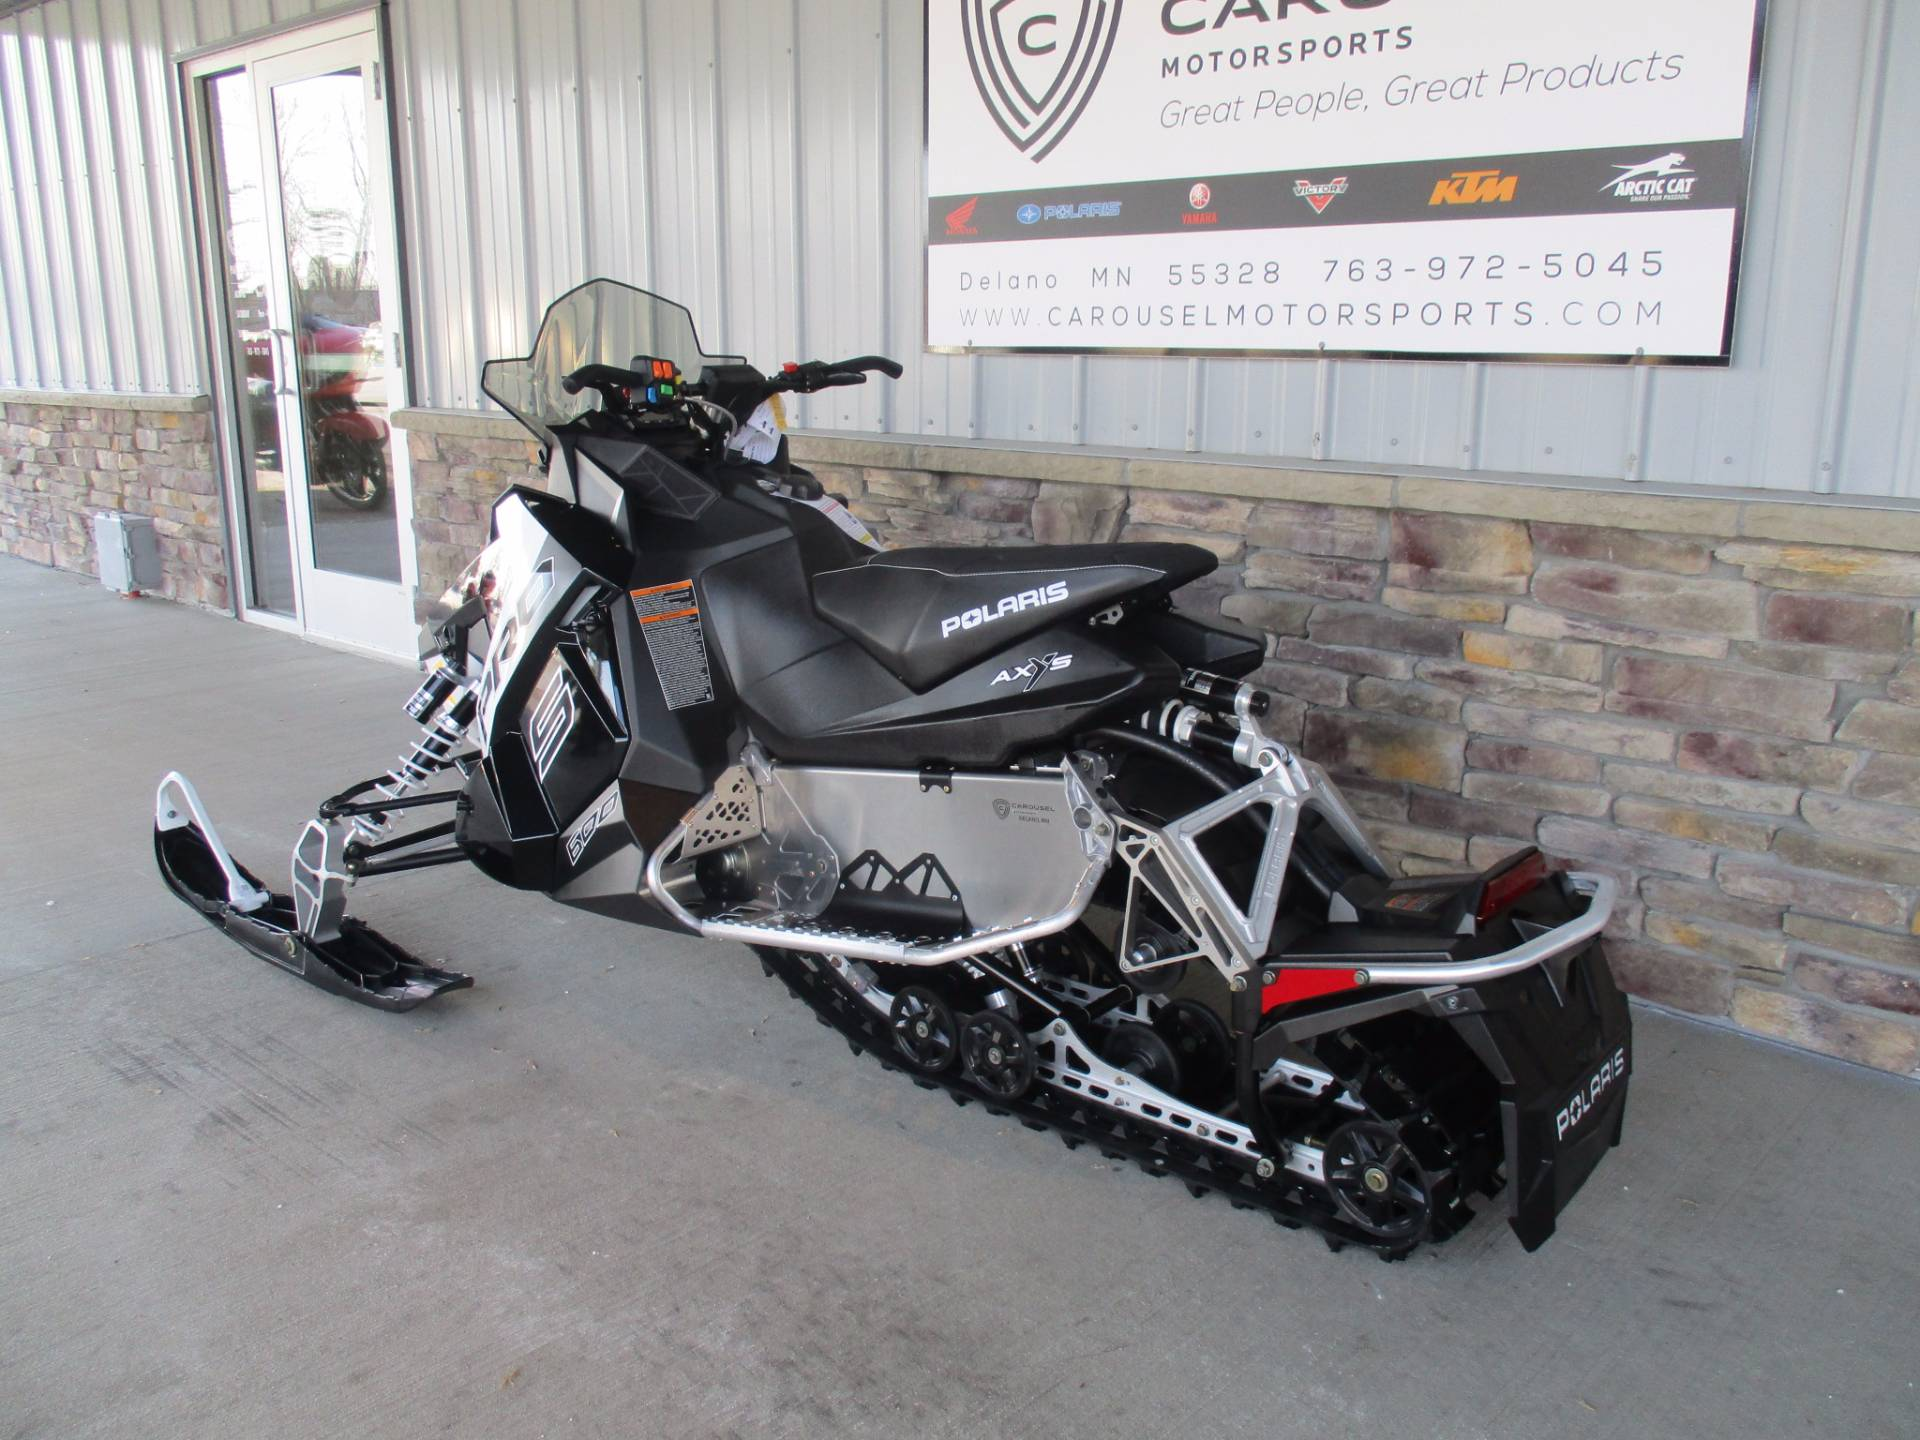 2017 Polaris 600 RUSH PRO-S ES in Delano, Minnesota